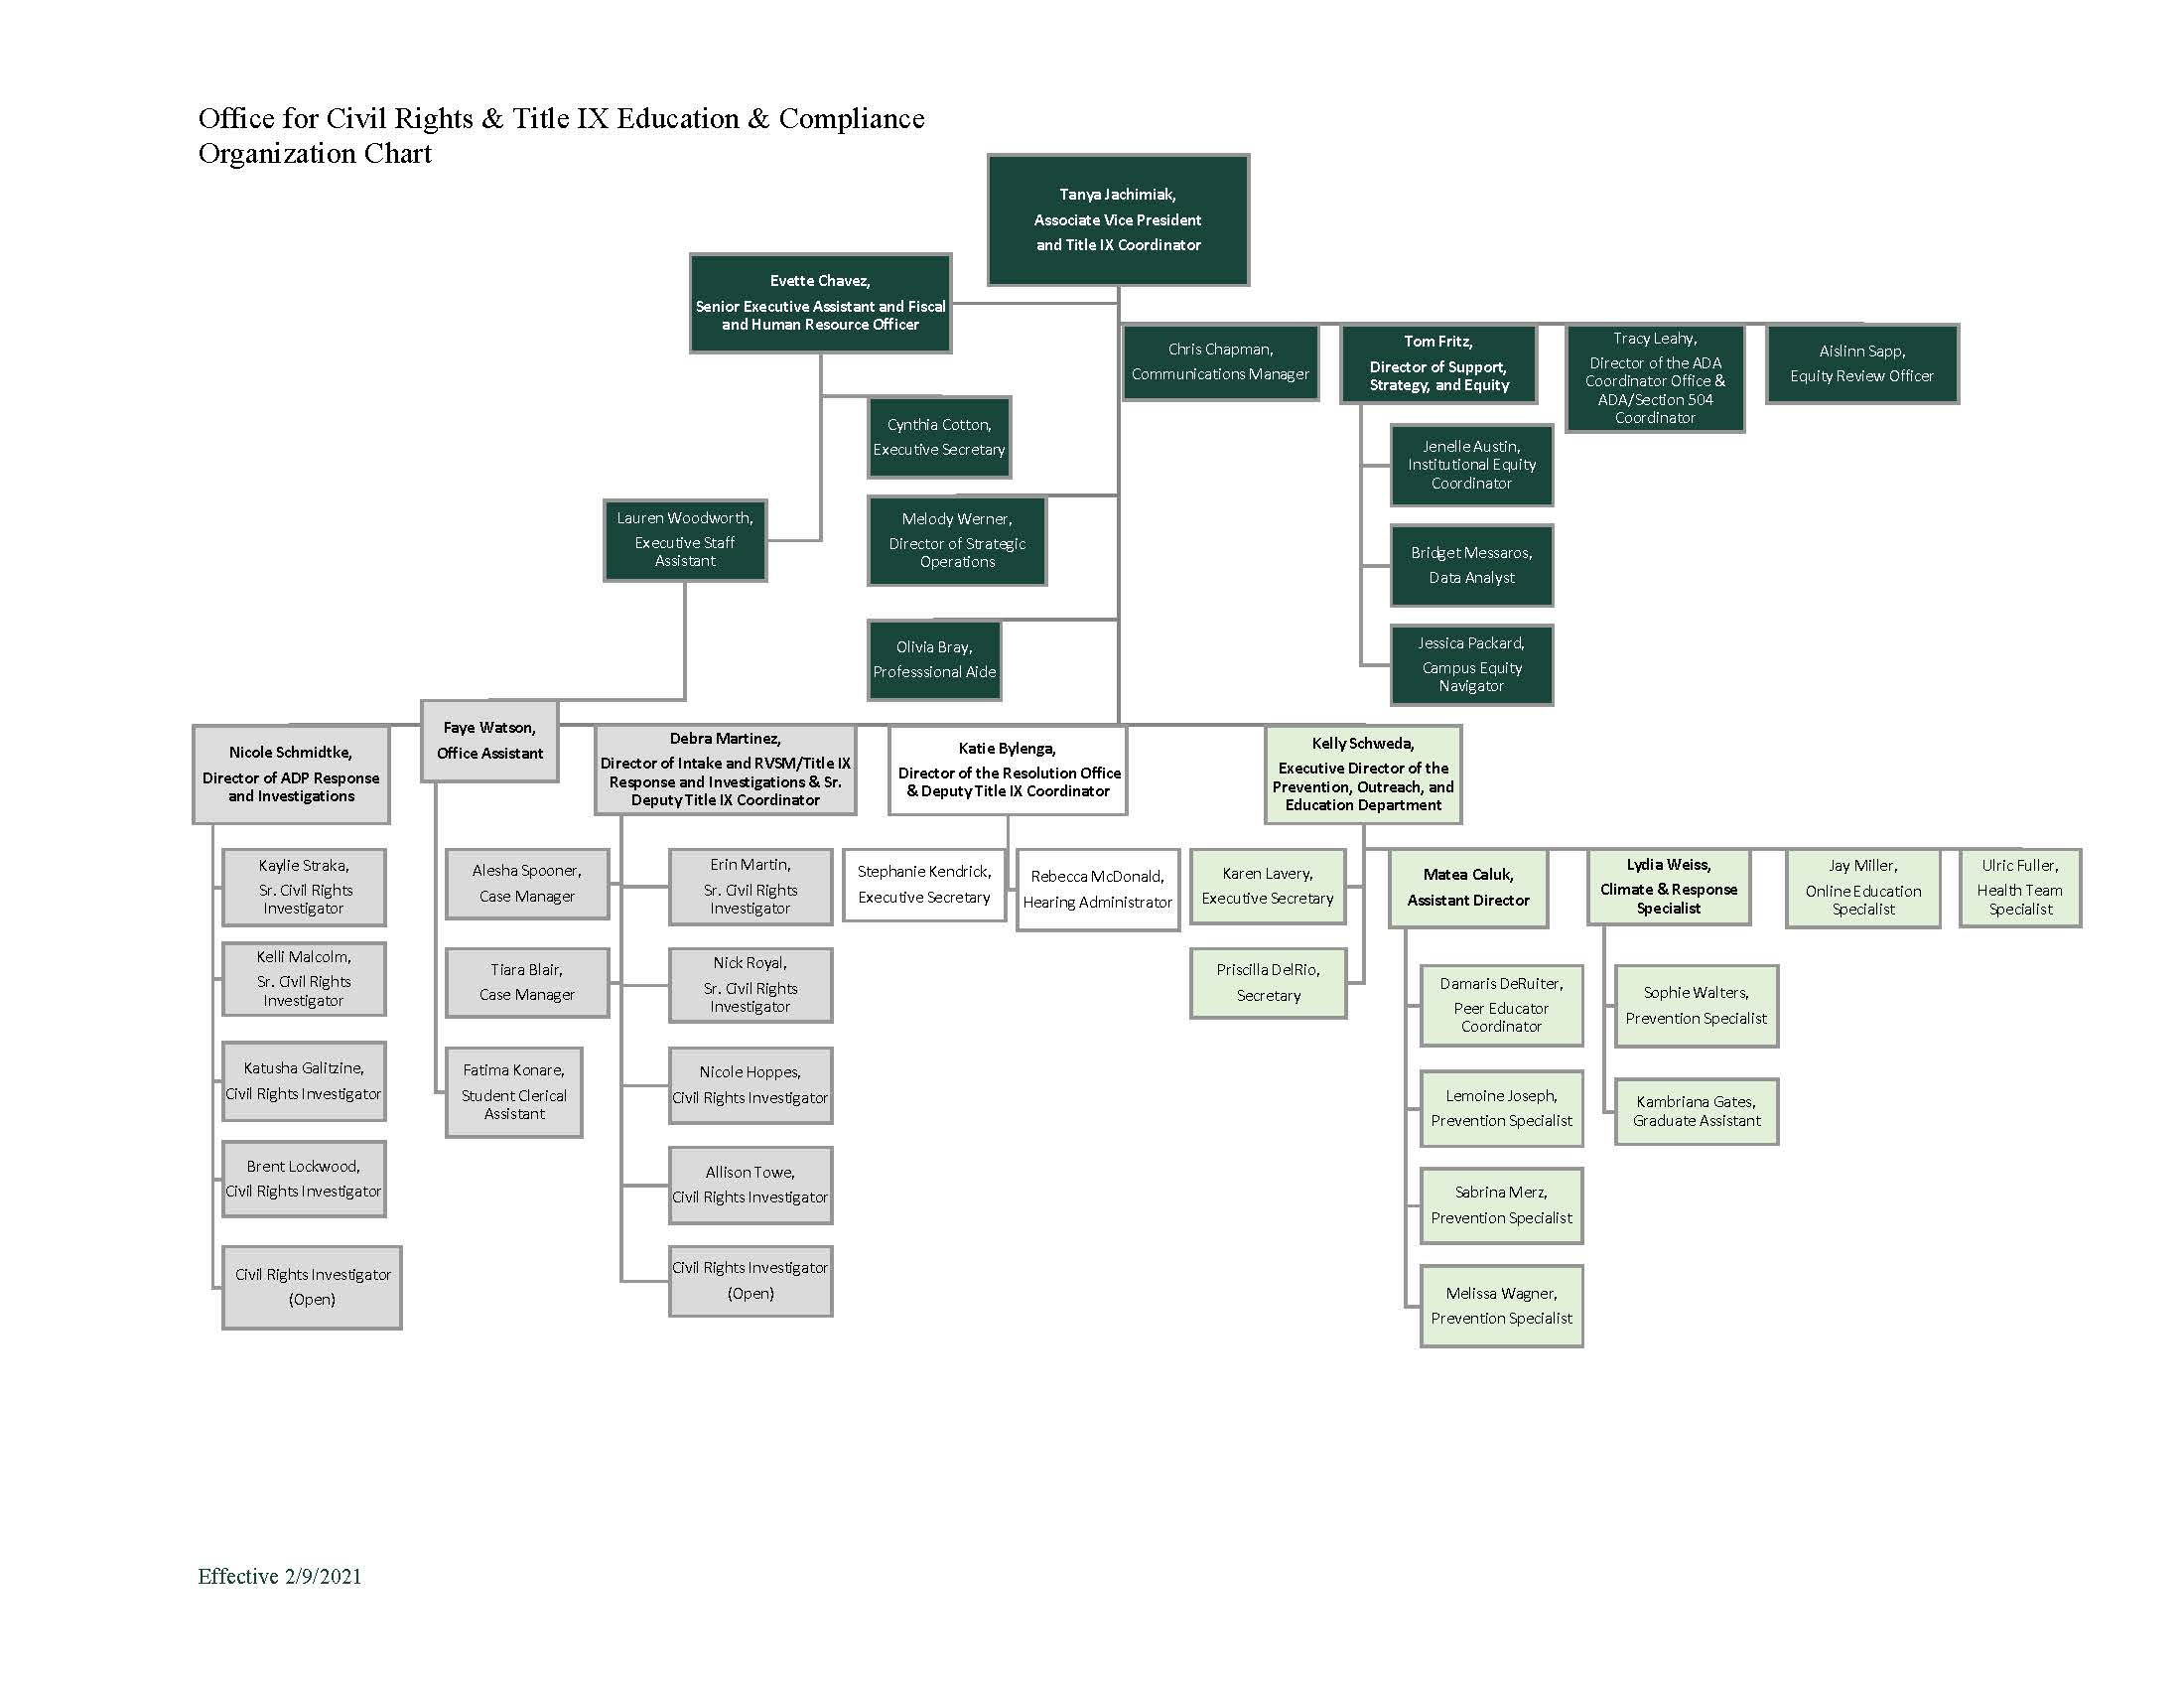 Office of Civil Rights Organizational Chart